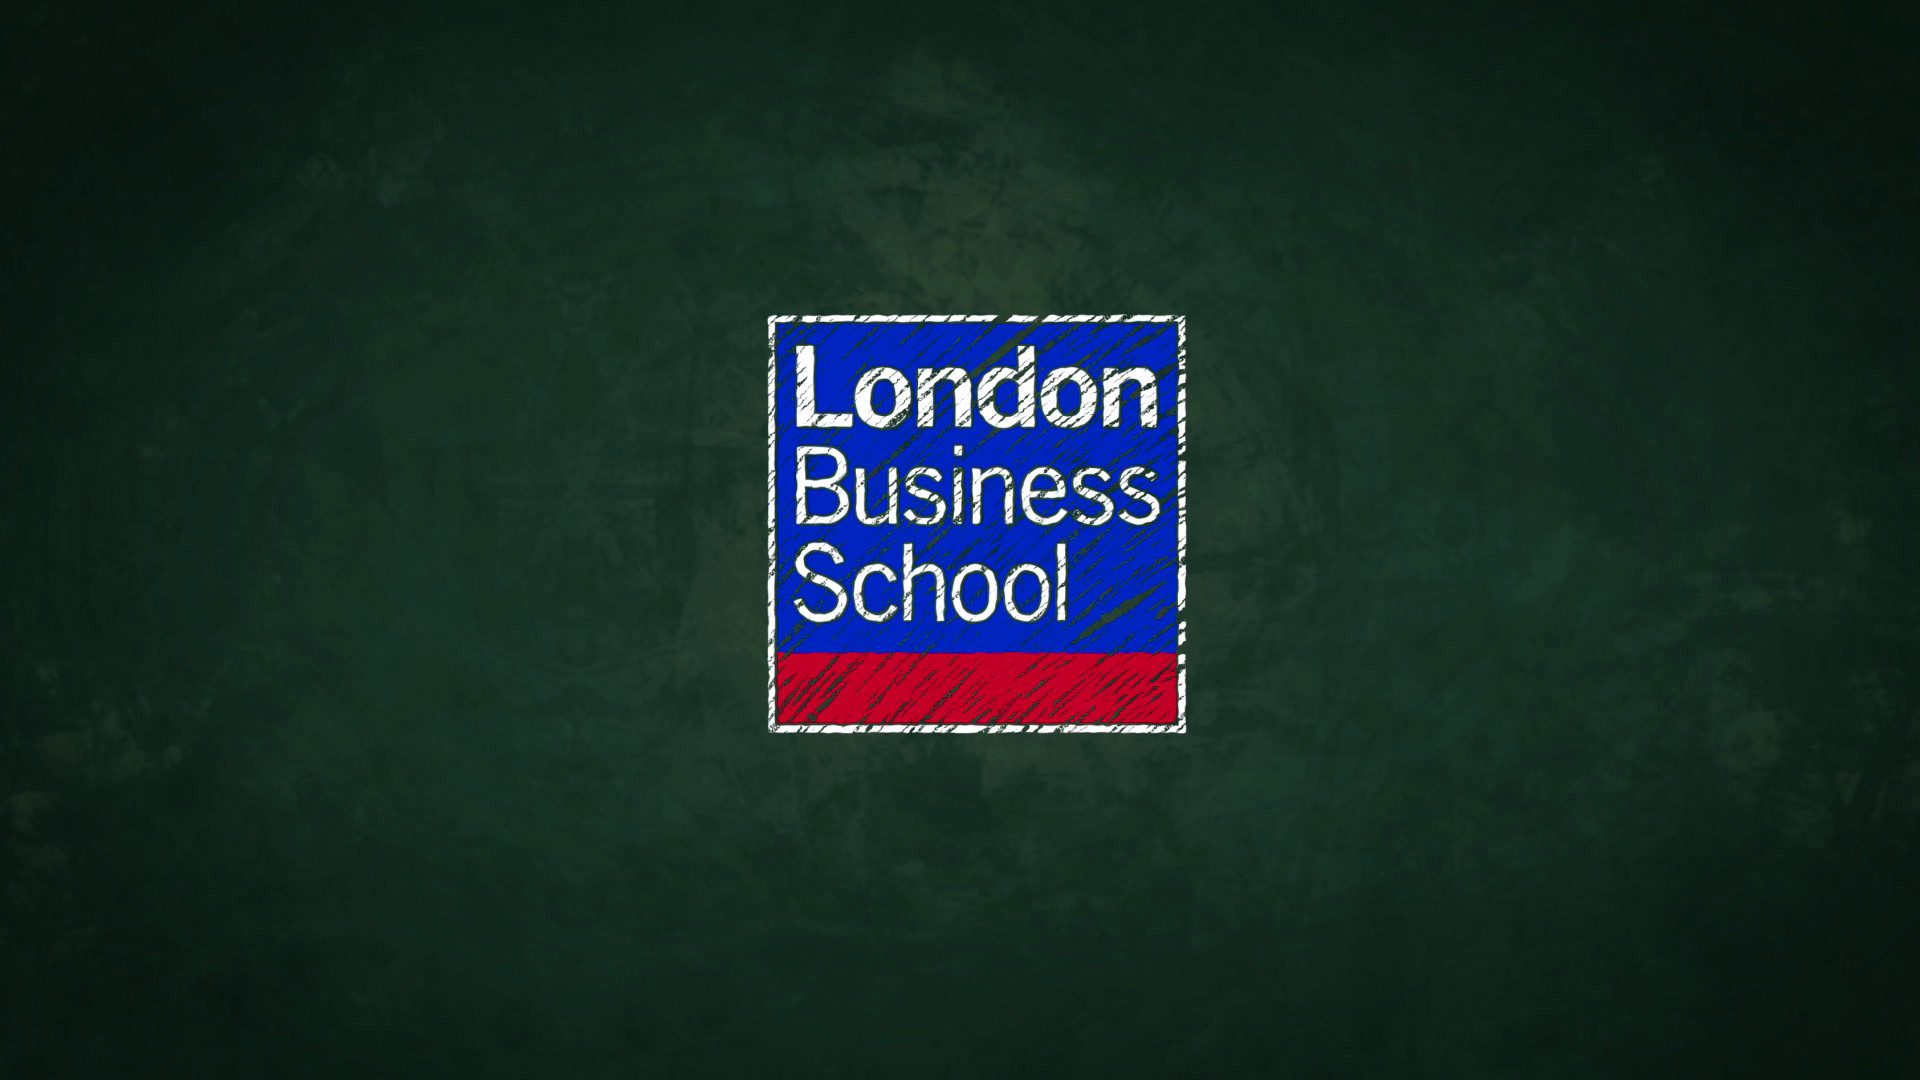 LondonBusinessSchool_1